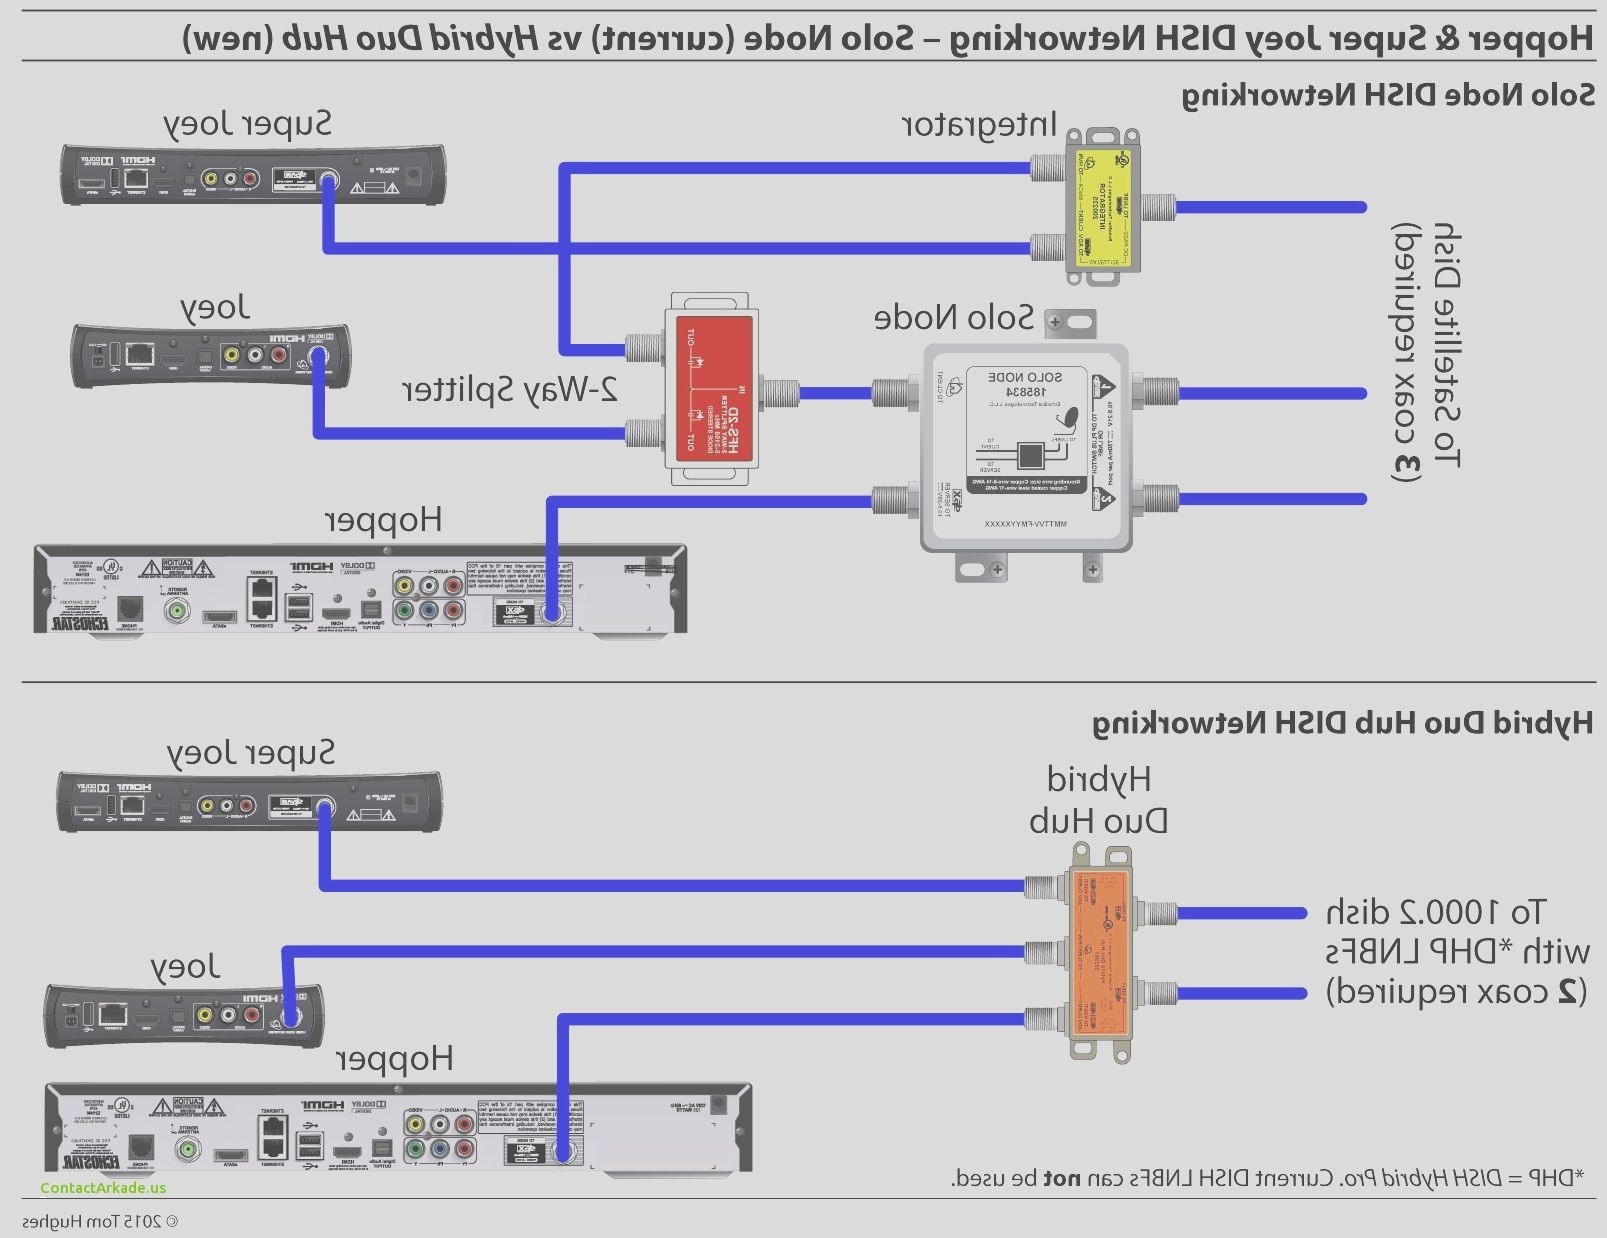 hight resolution of home network wiring diagram download wiring diagram for cat5 ethernet cable inspirationa wiring diagram for